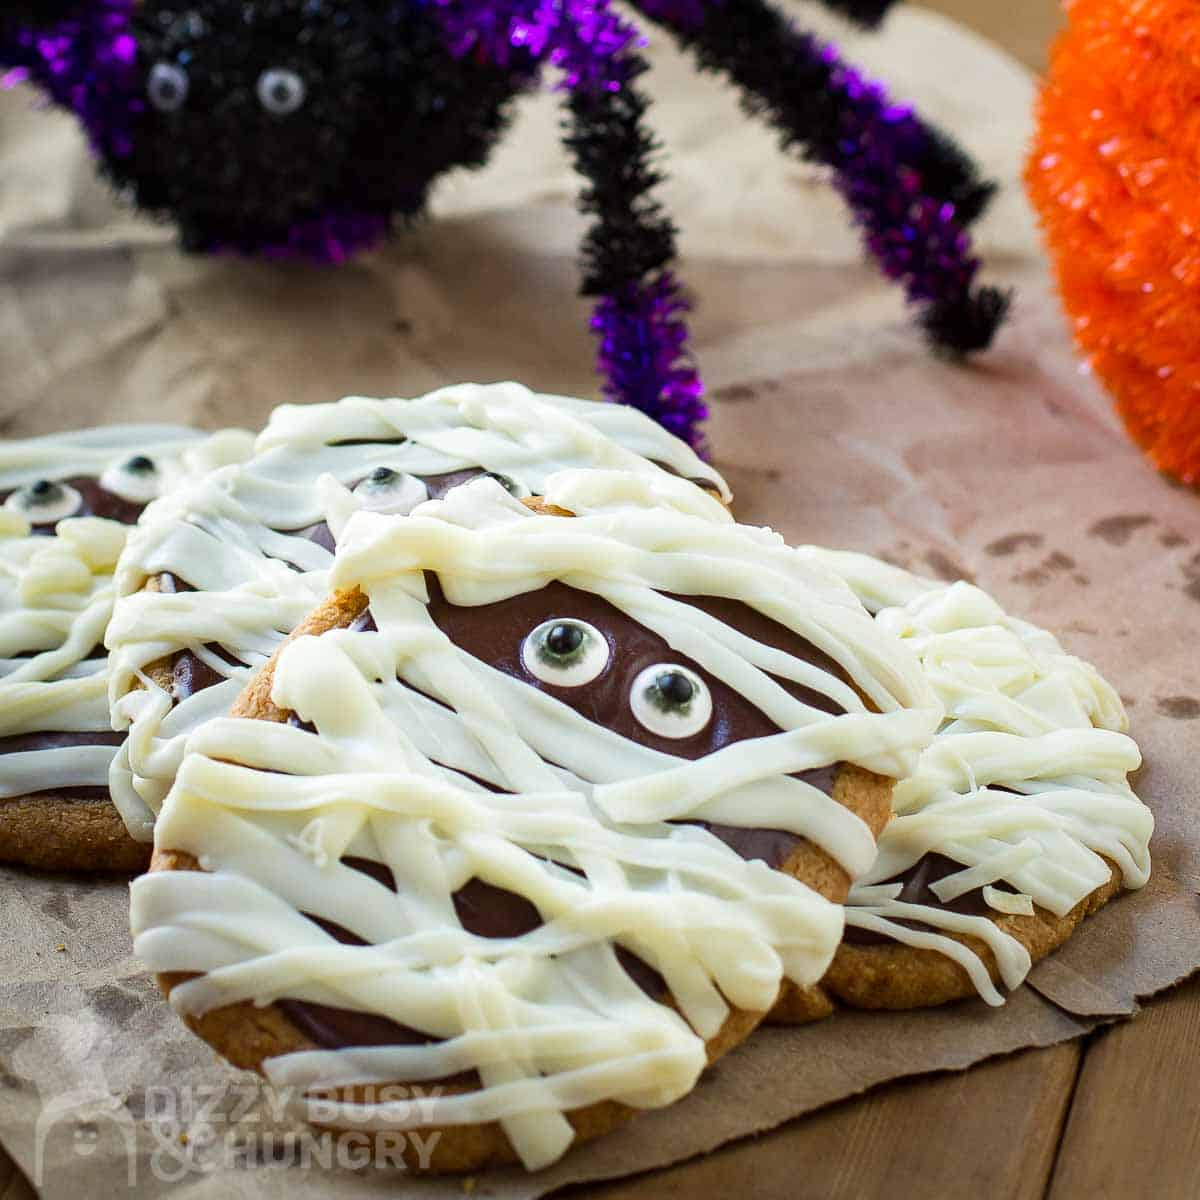 Close up shot of multiple mummy cookies stacked on each other with a purple and black decorative spider in the background.